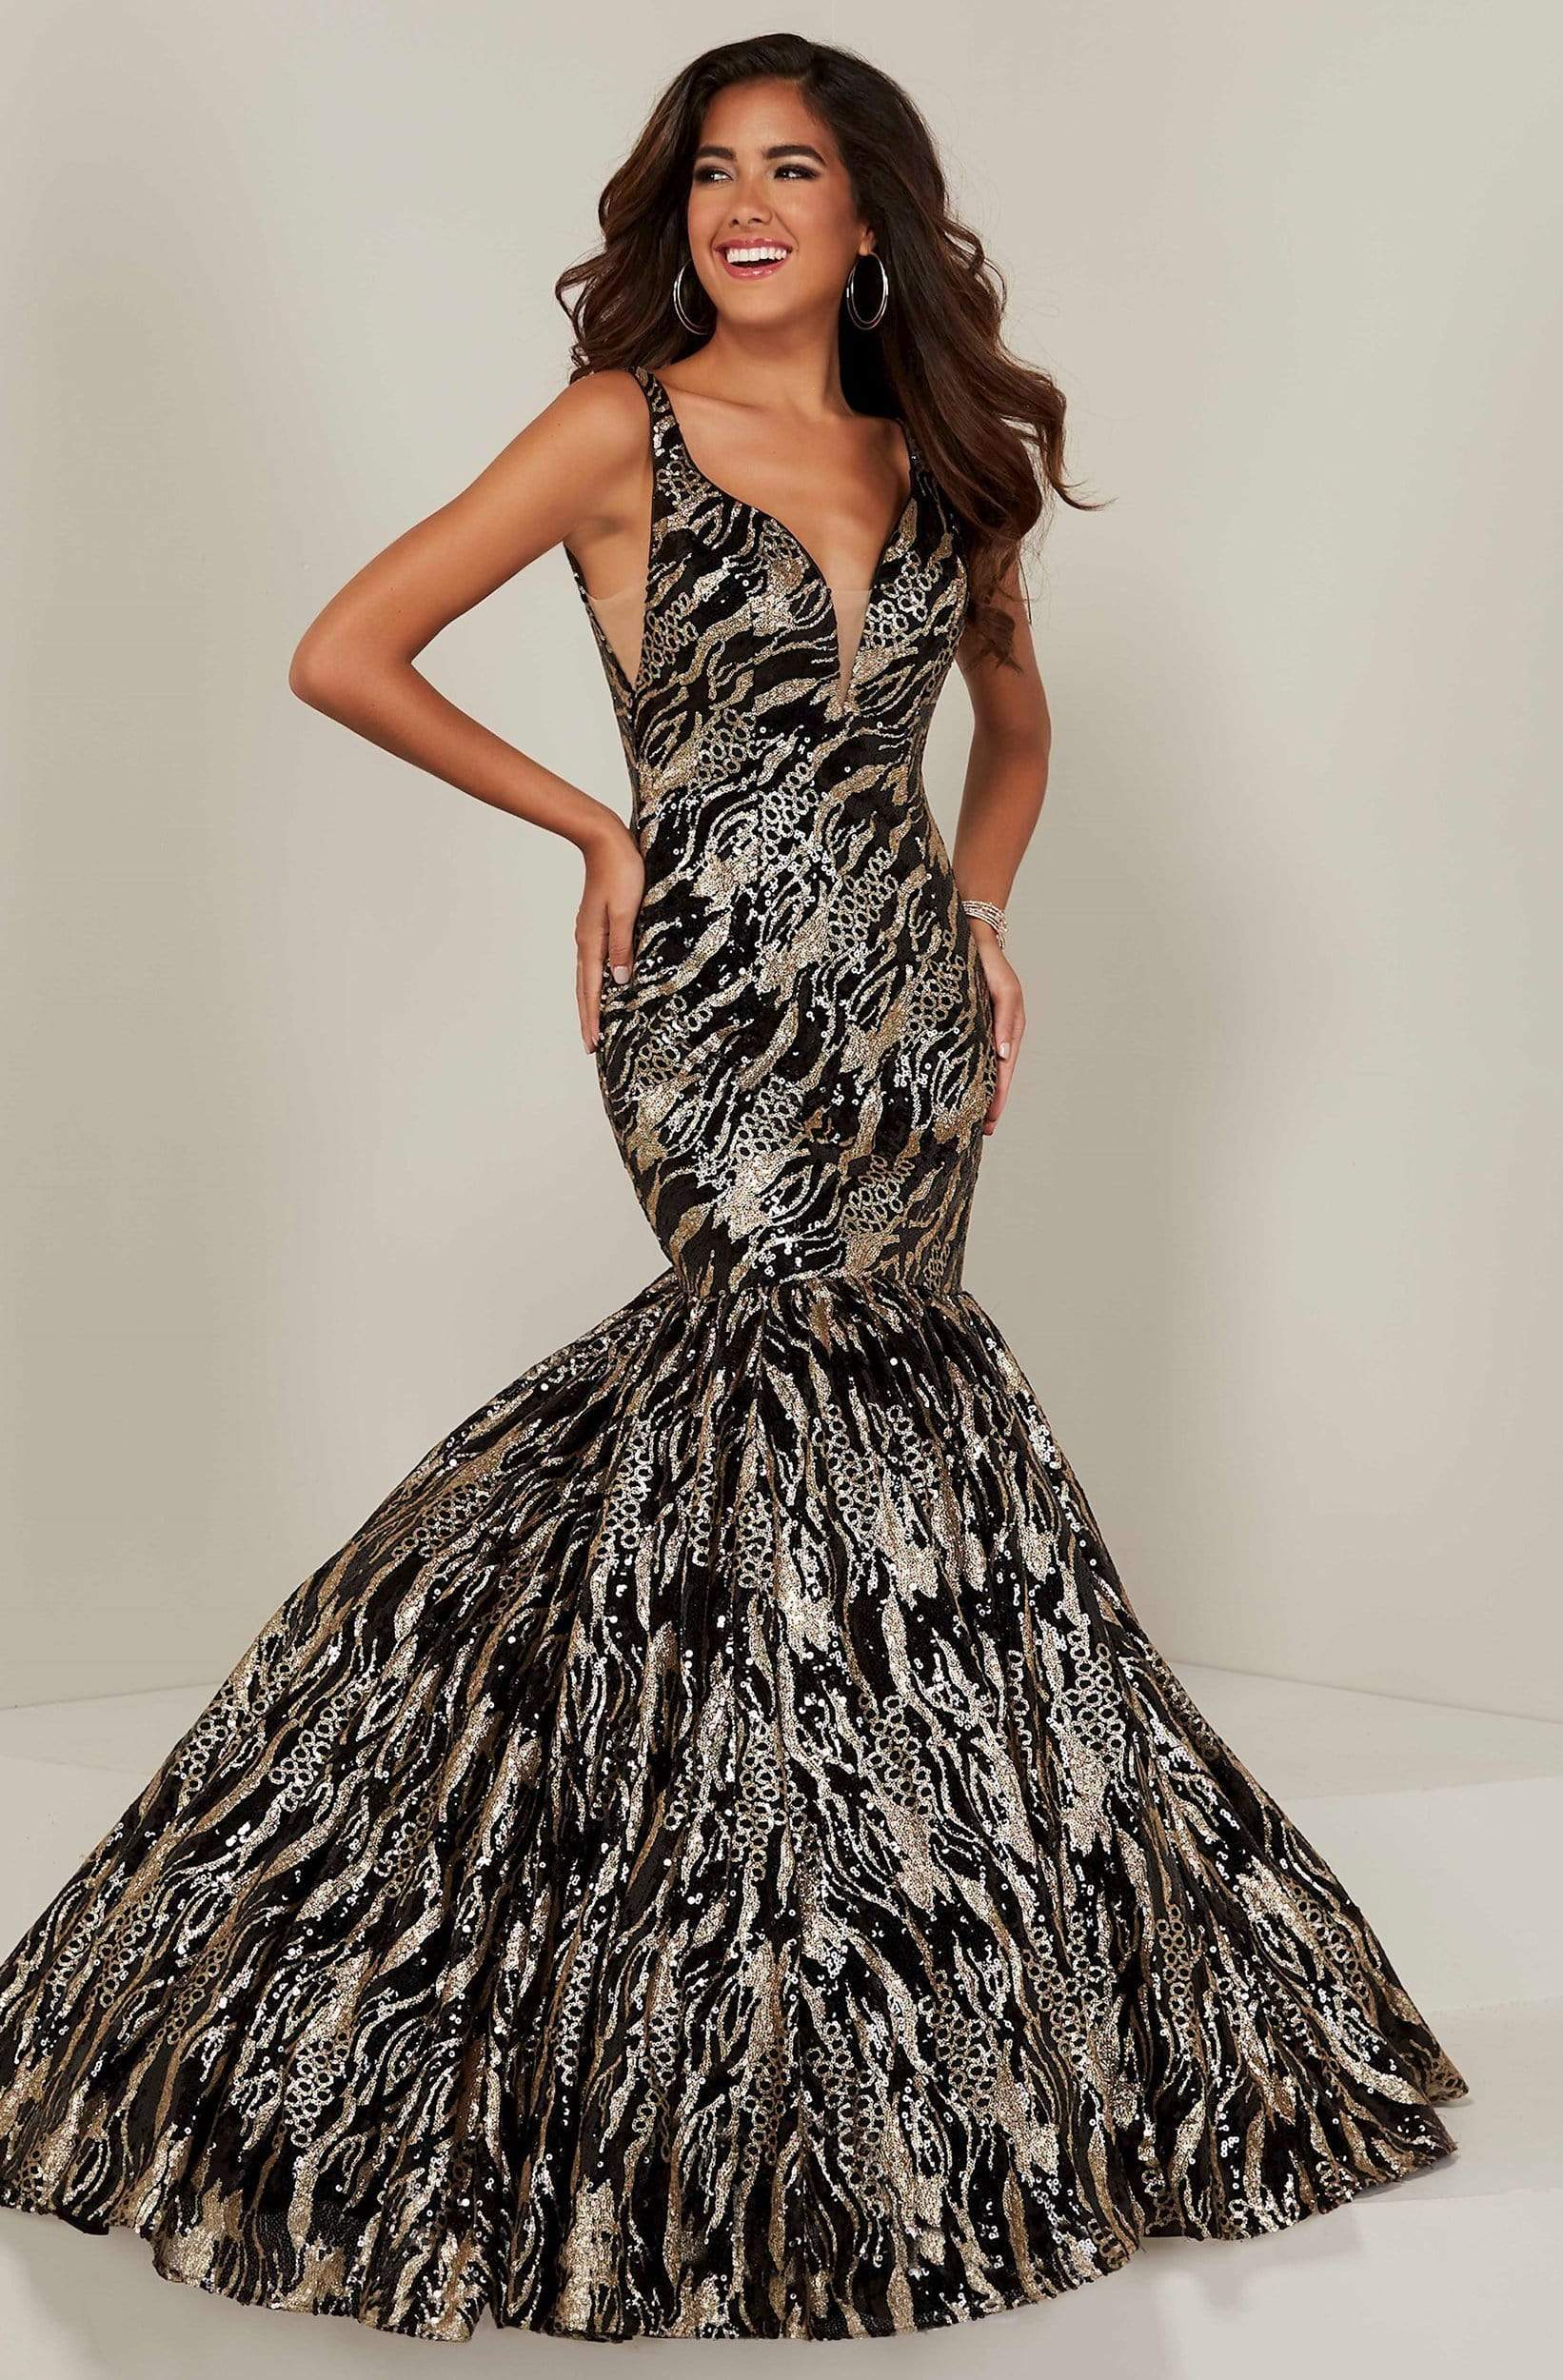 Tiffany Designs - 16361 Sequined Motif Plunging Trumpet Gown from Tiffany Designs